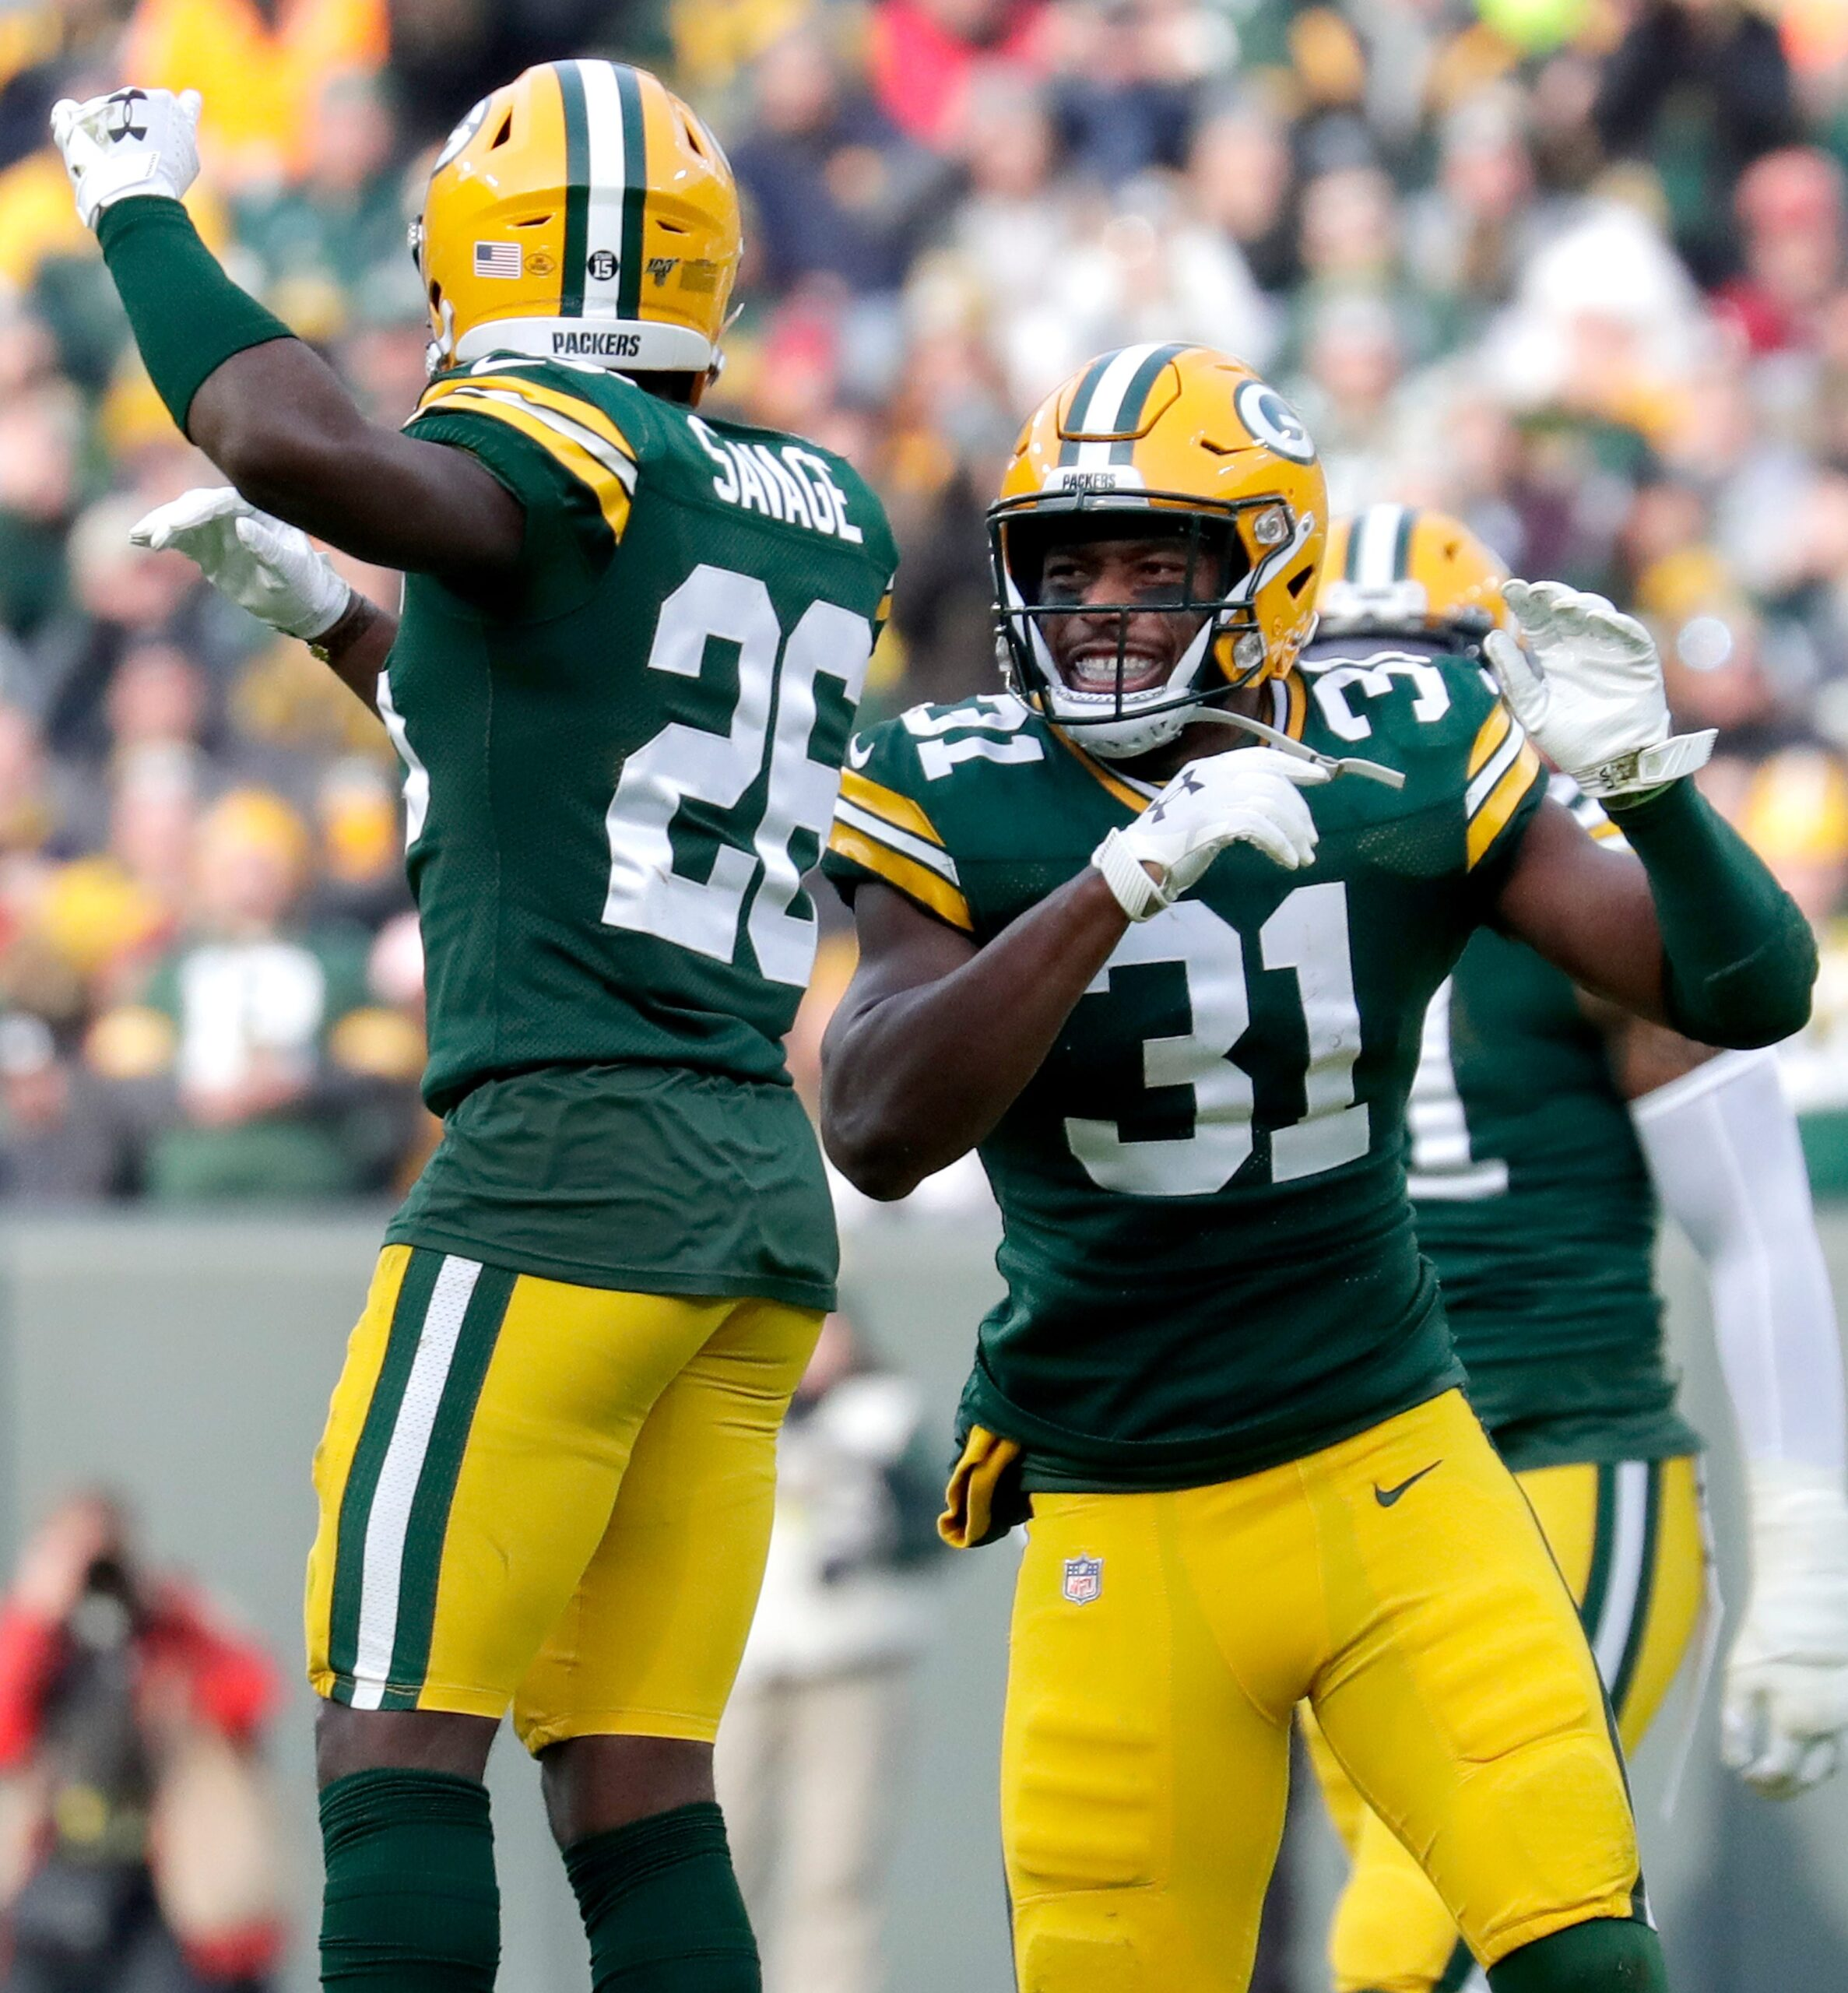 Amos, Savage playing best football at right time